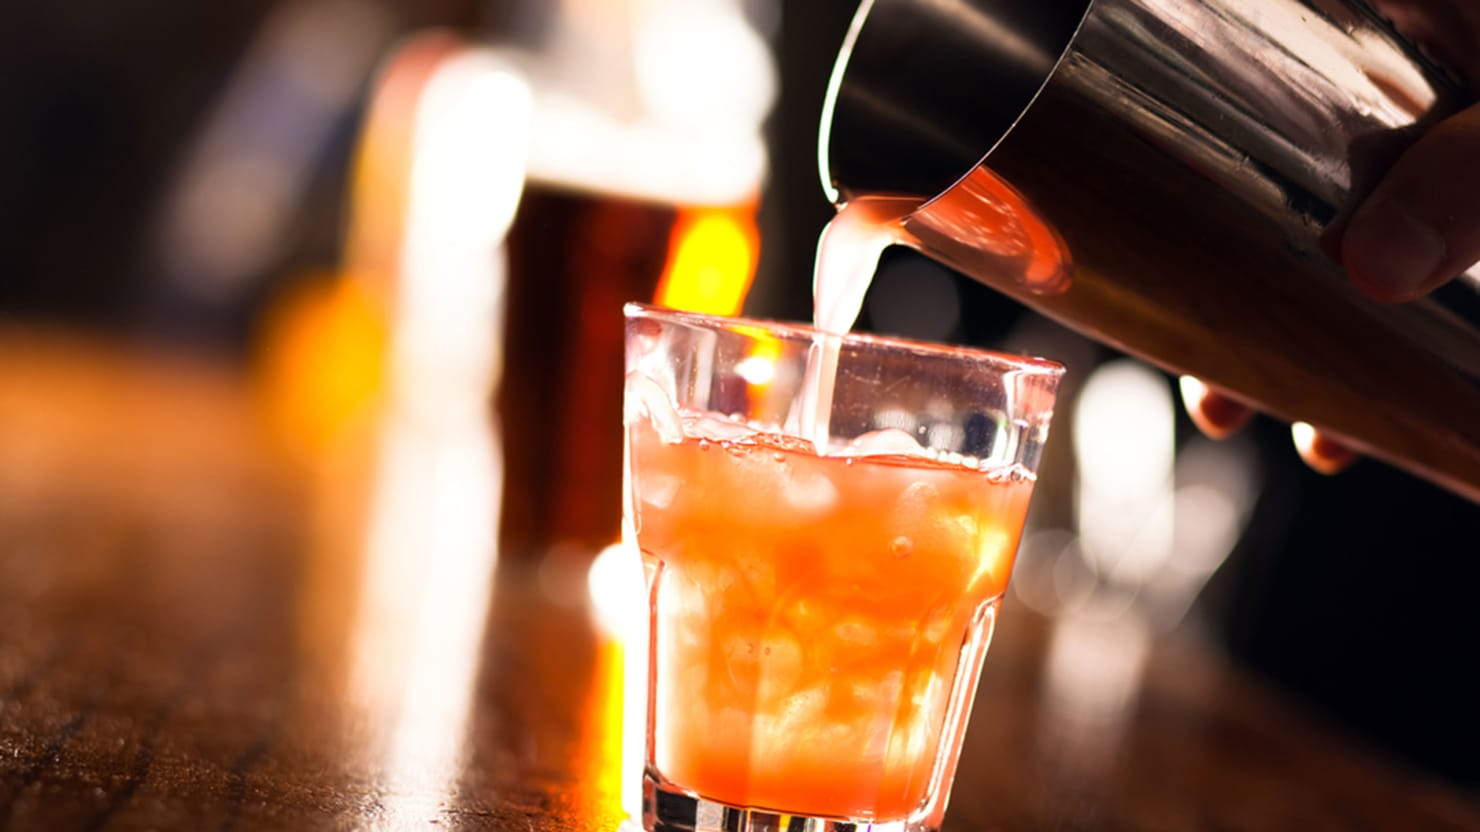 How Bad Is Booze Really 6 Crazy Facts About Drinking Alcohol